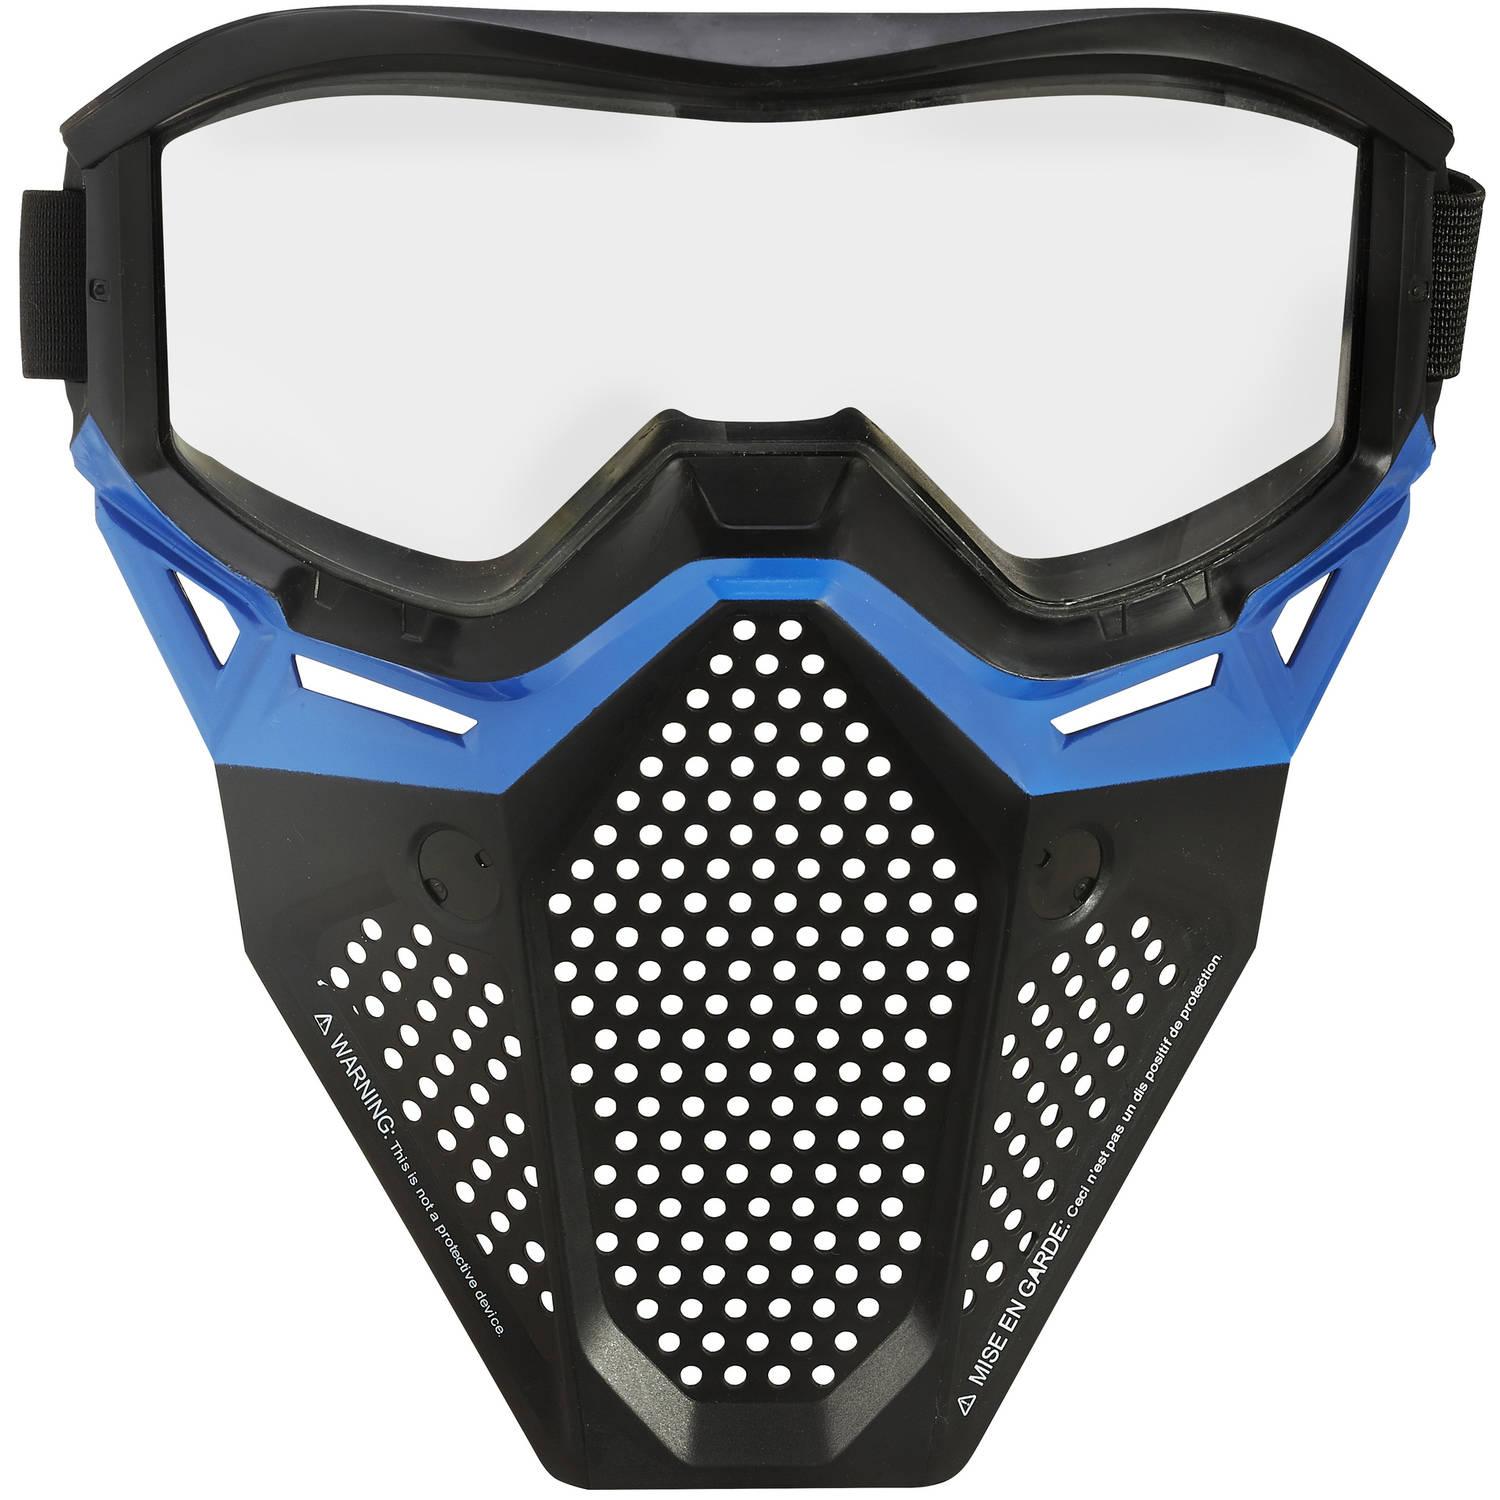 Nerf Rival Face Mask, Blue